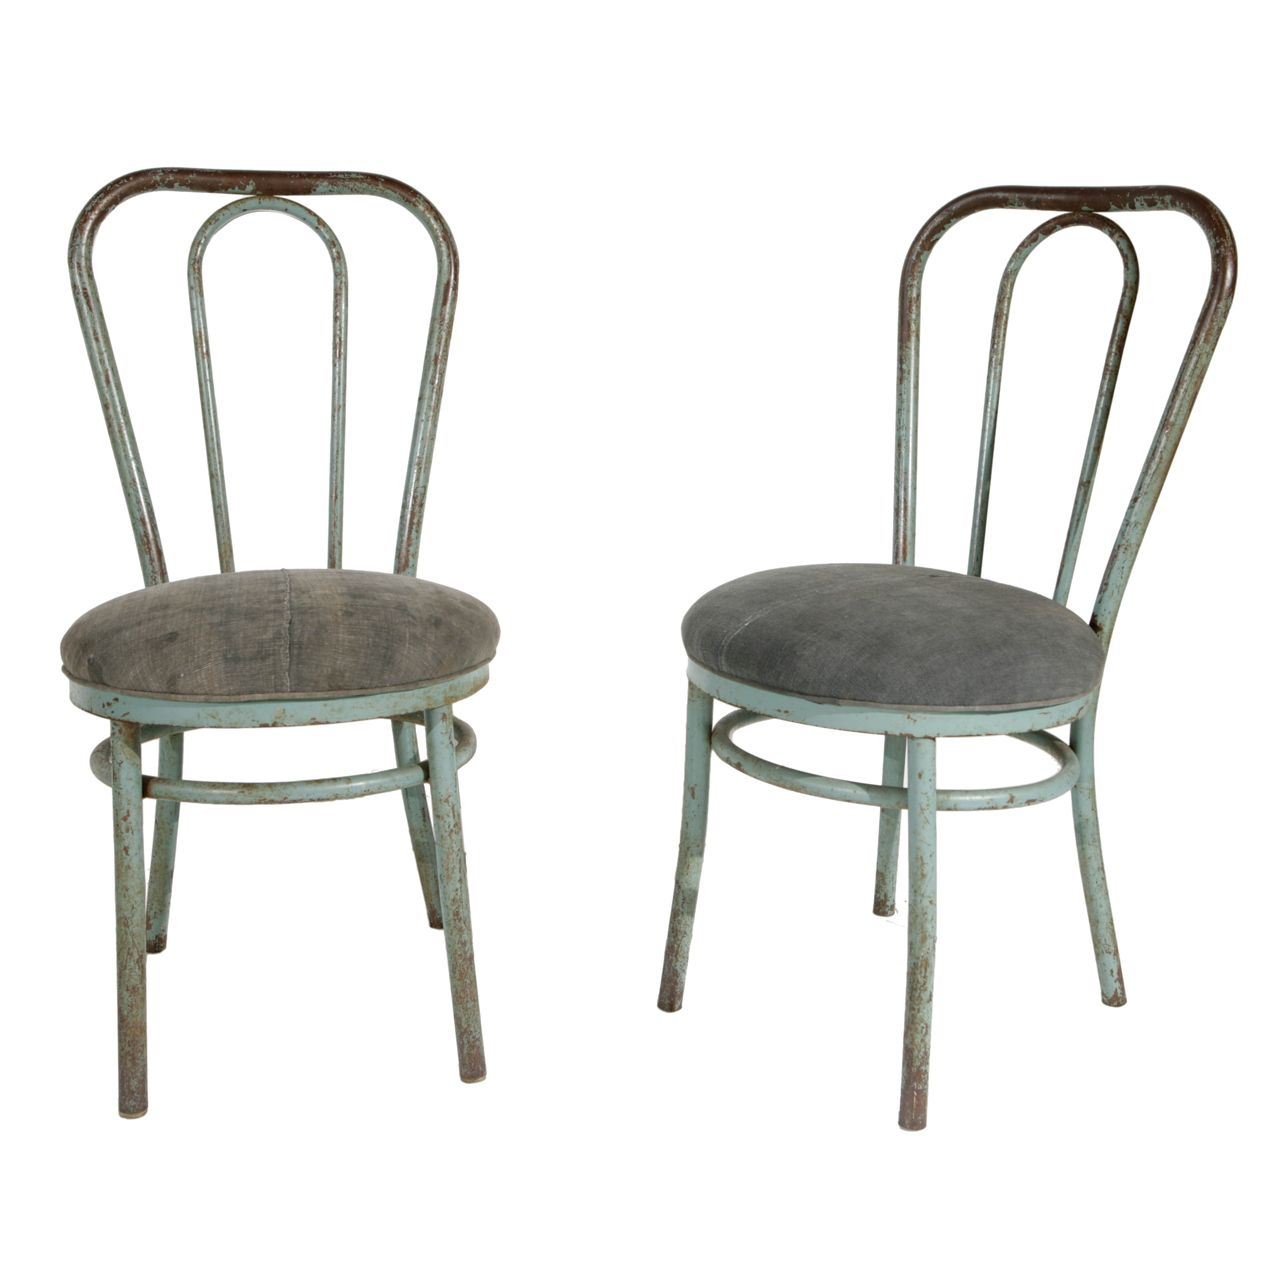 Marvelous Pair Of Bent Metal Thonet Inspired Dining Chairs